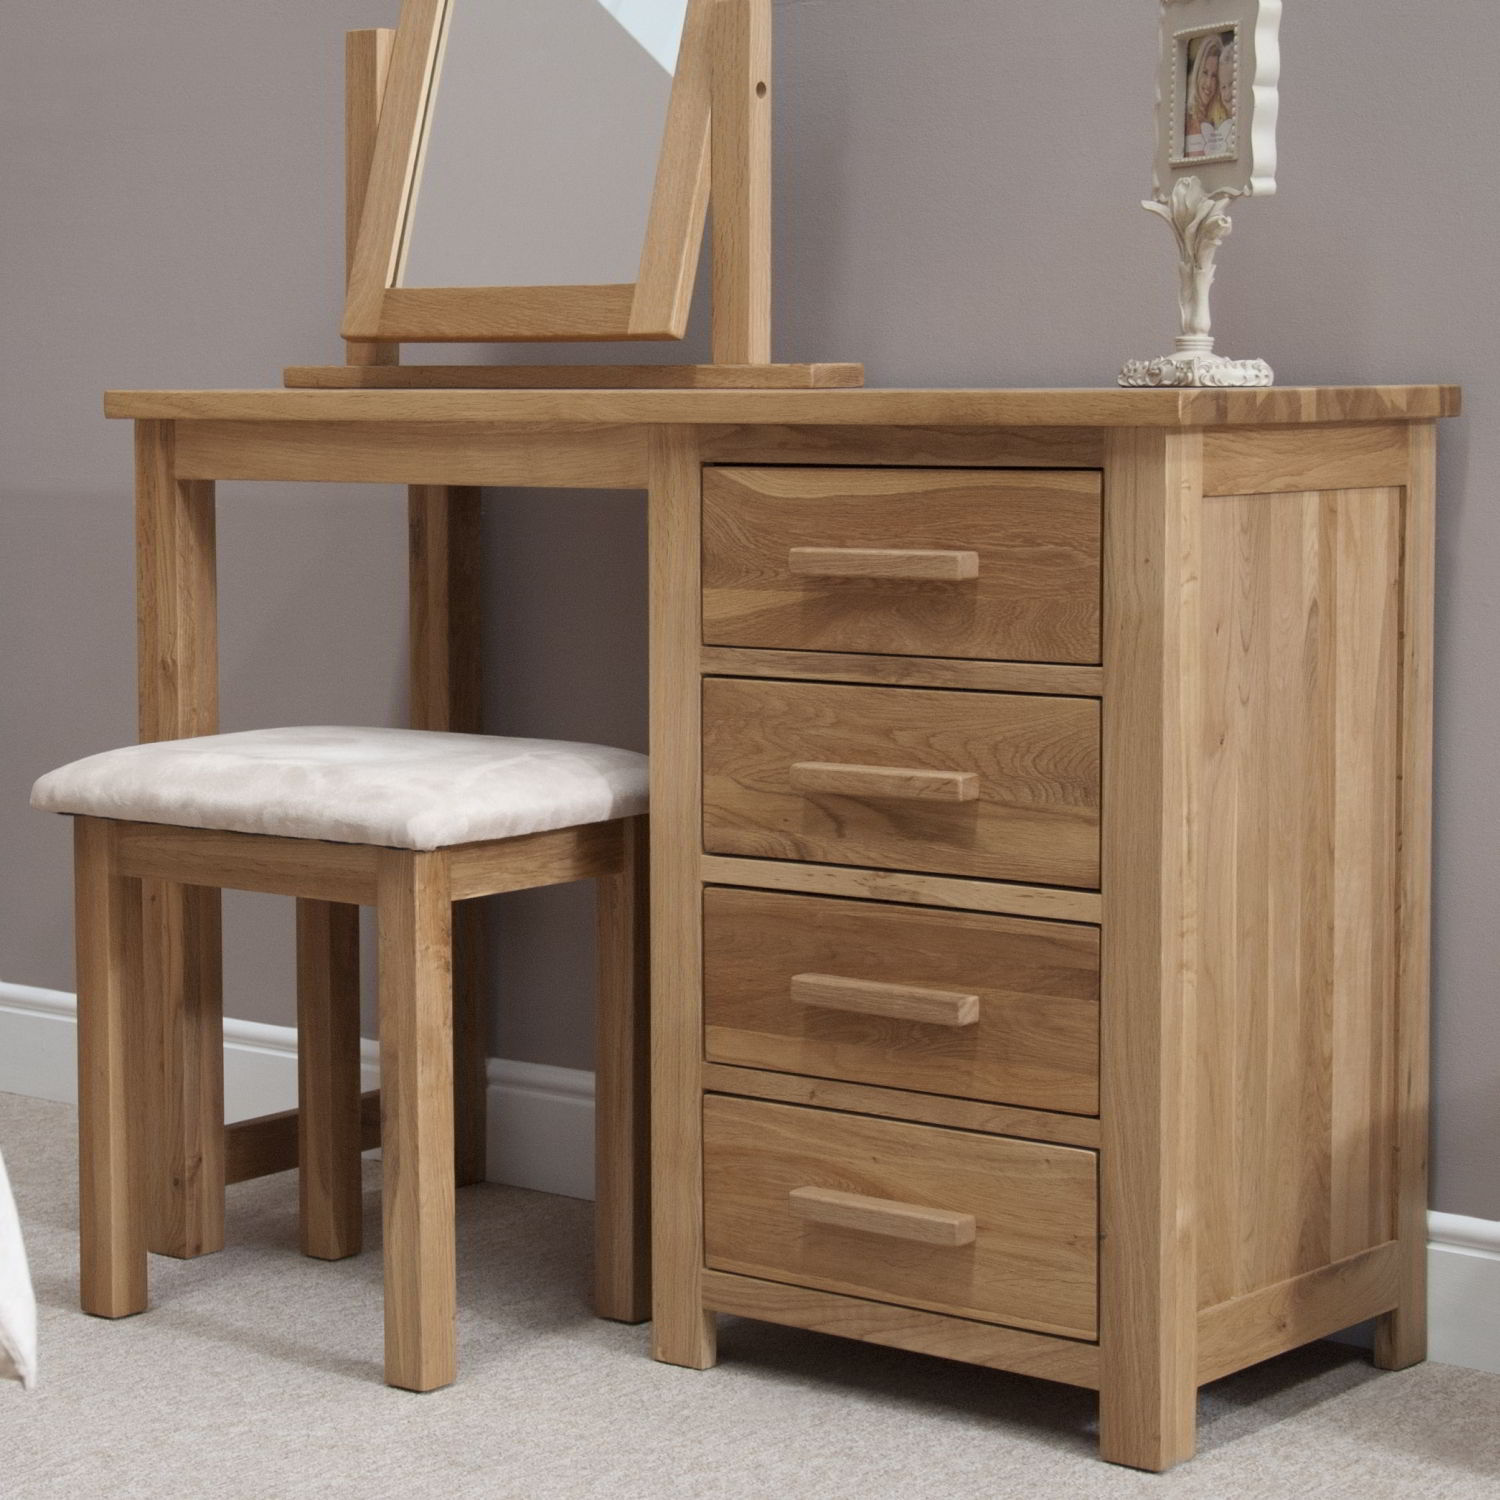 Eton solid oak contemporary bedroom furniture dressing